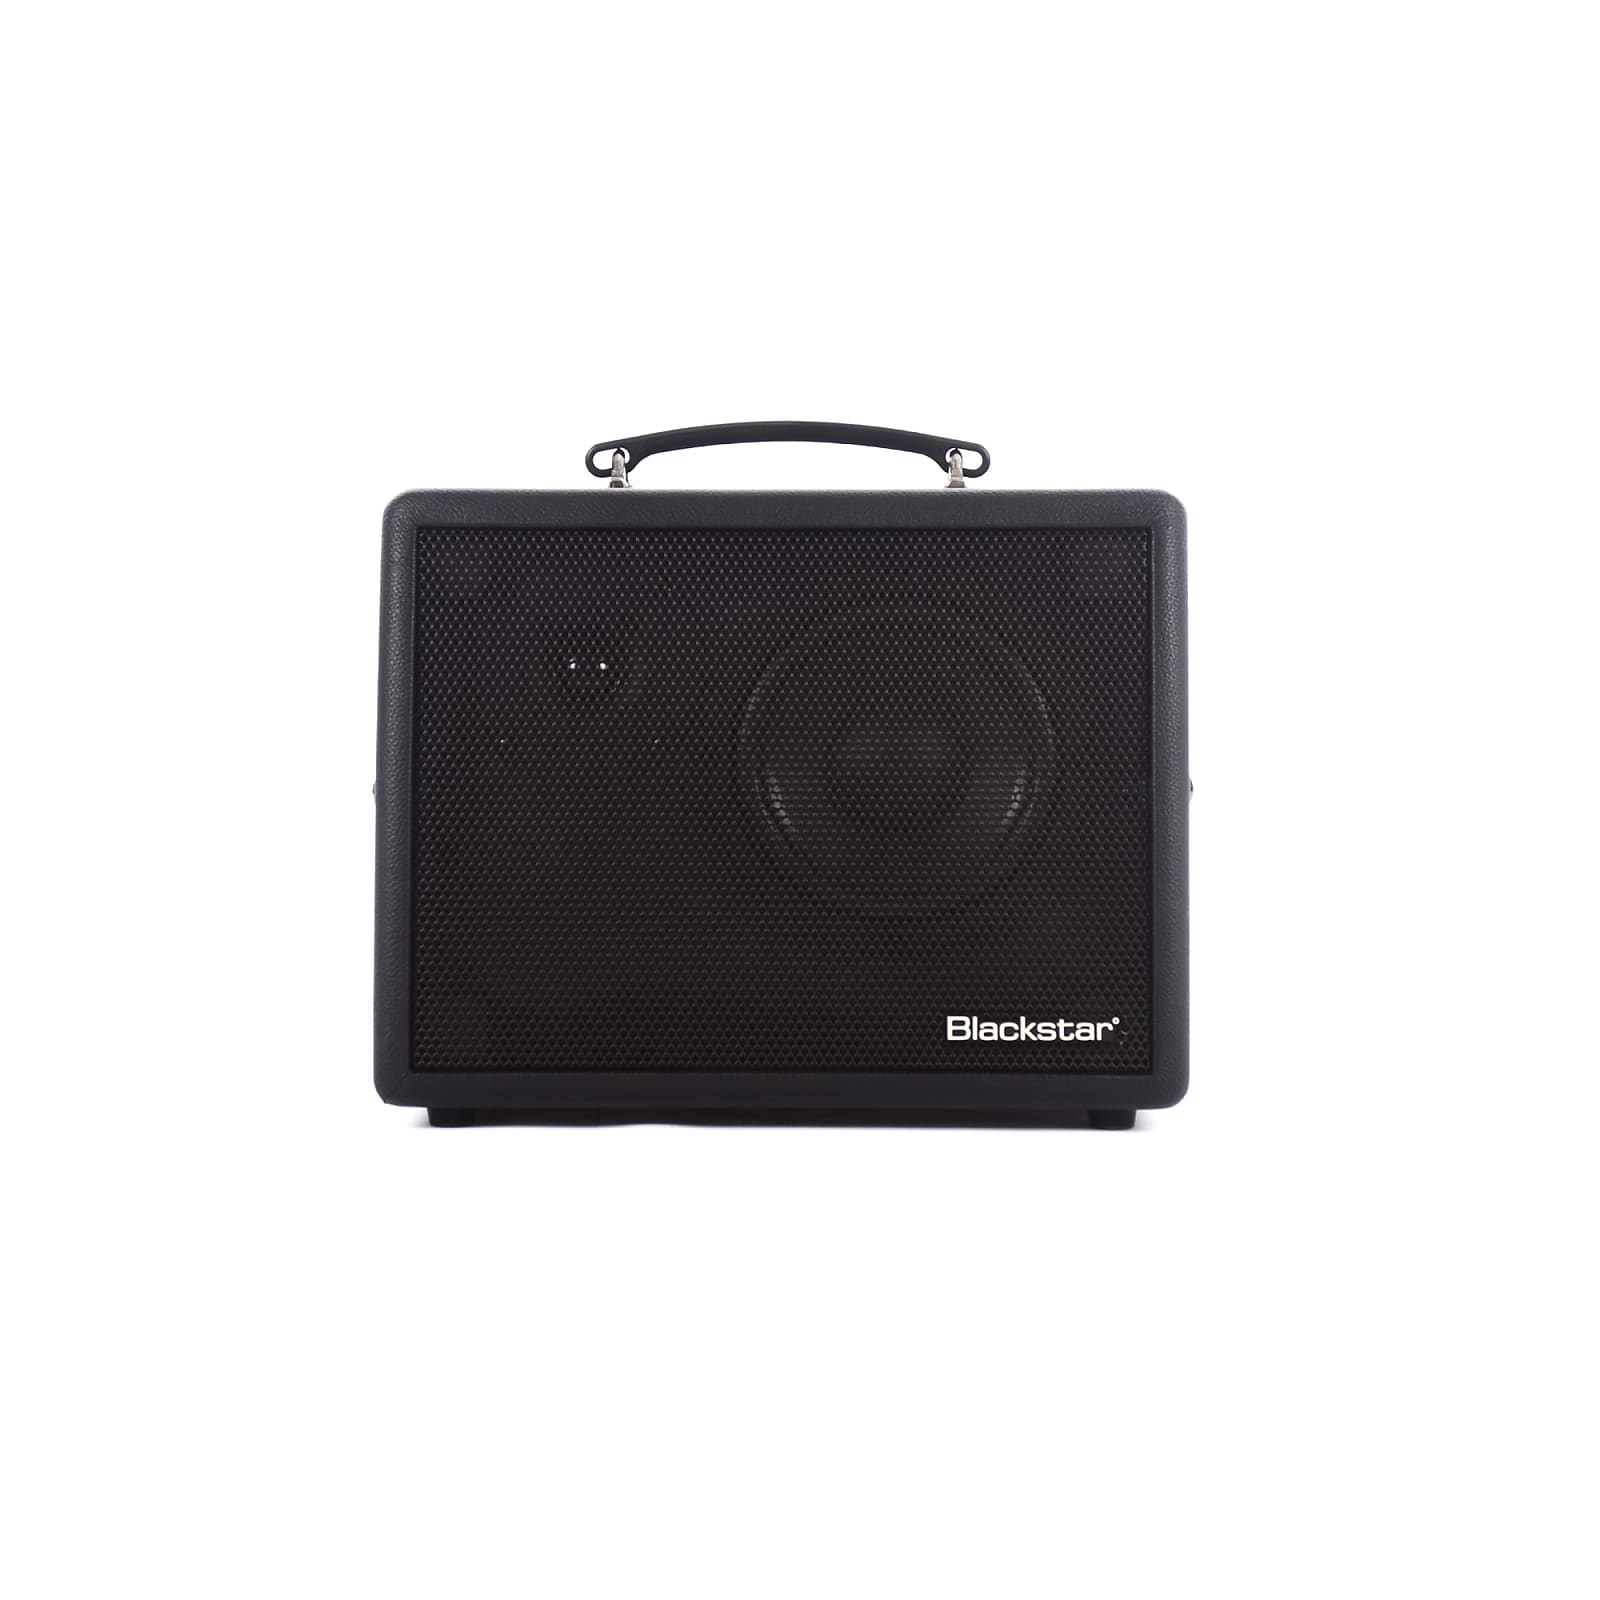 Blackstar Sonnet 60W Acoustic Amp Black